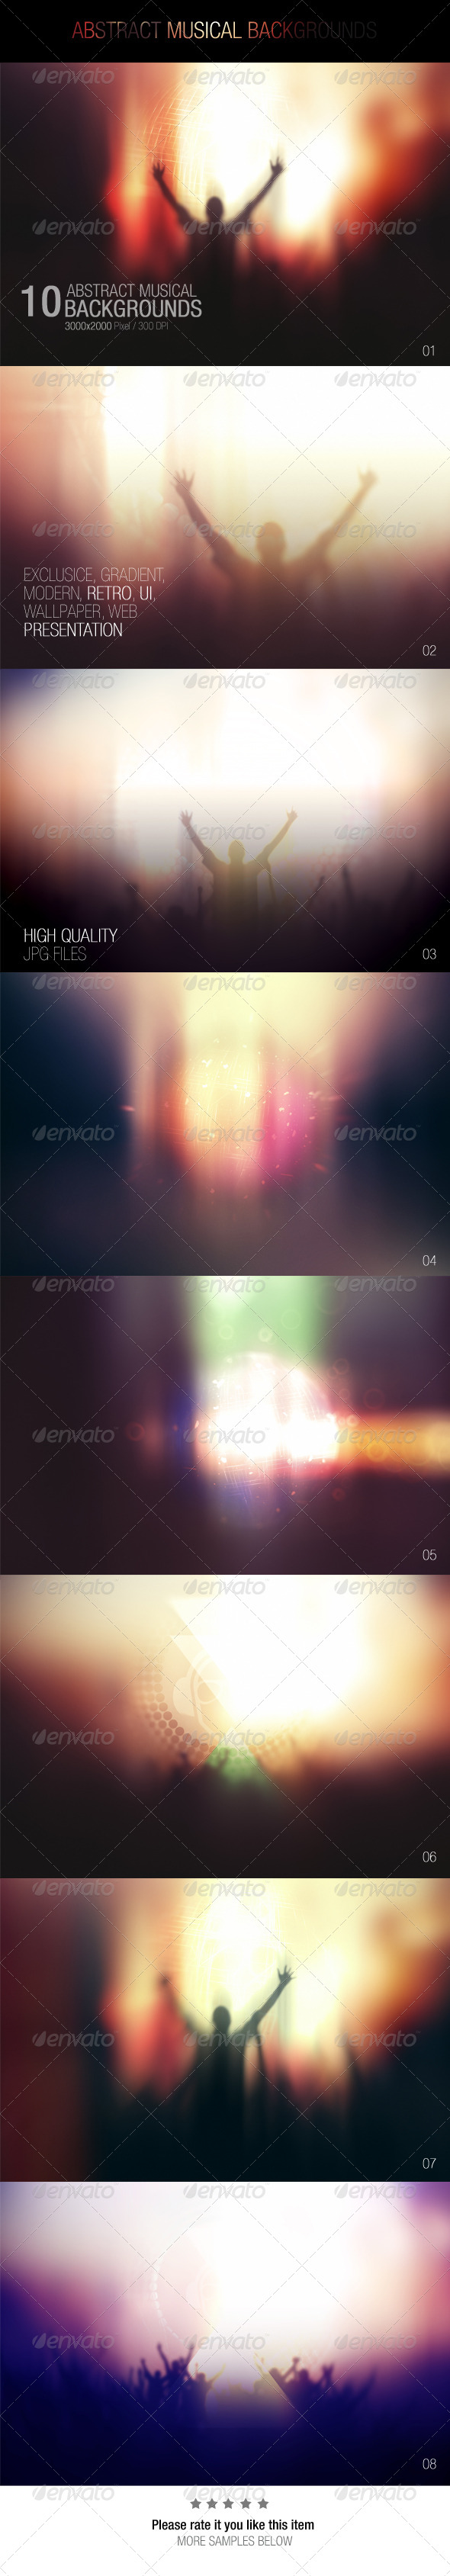 GraphicRiver Abstract Musical Backgrounds 7738047